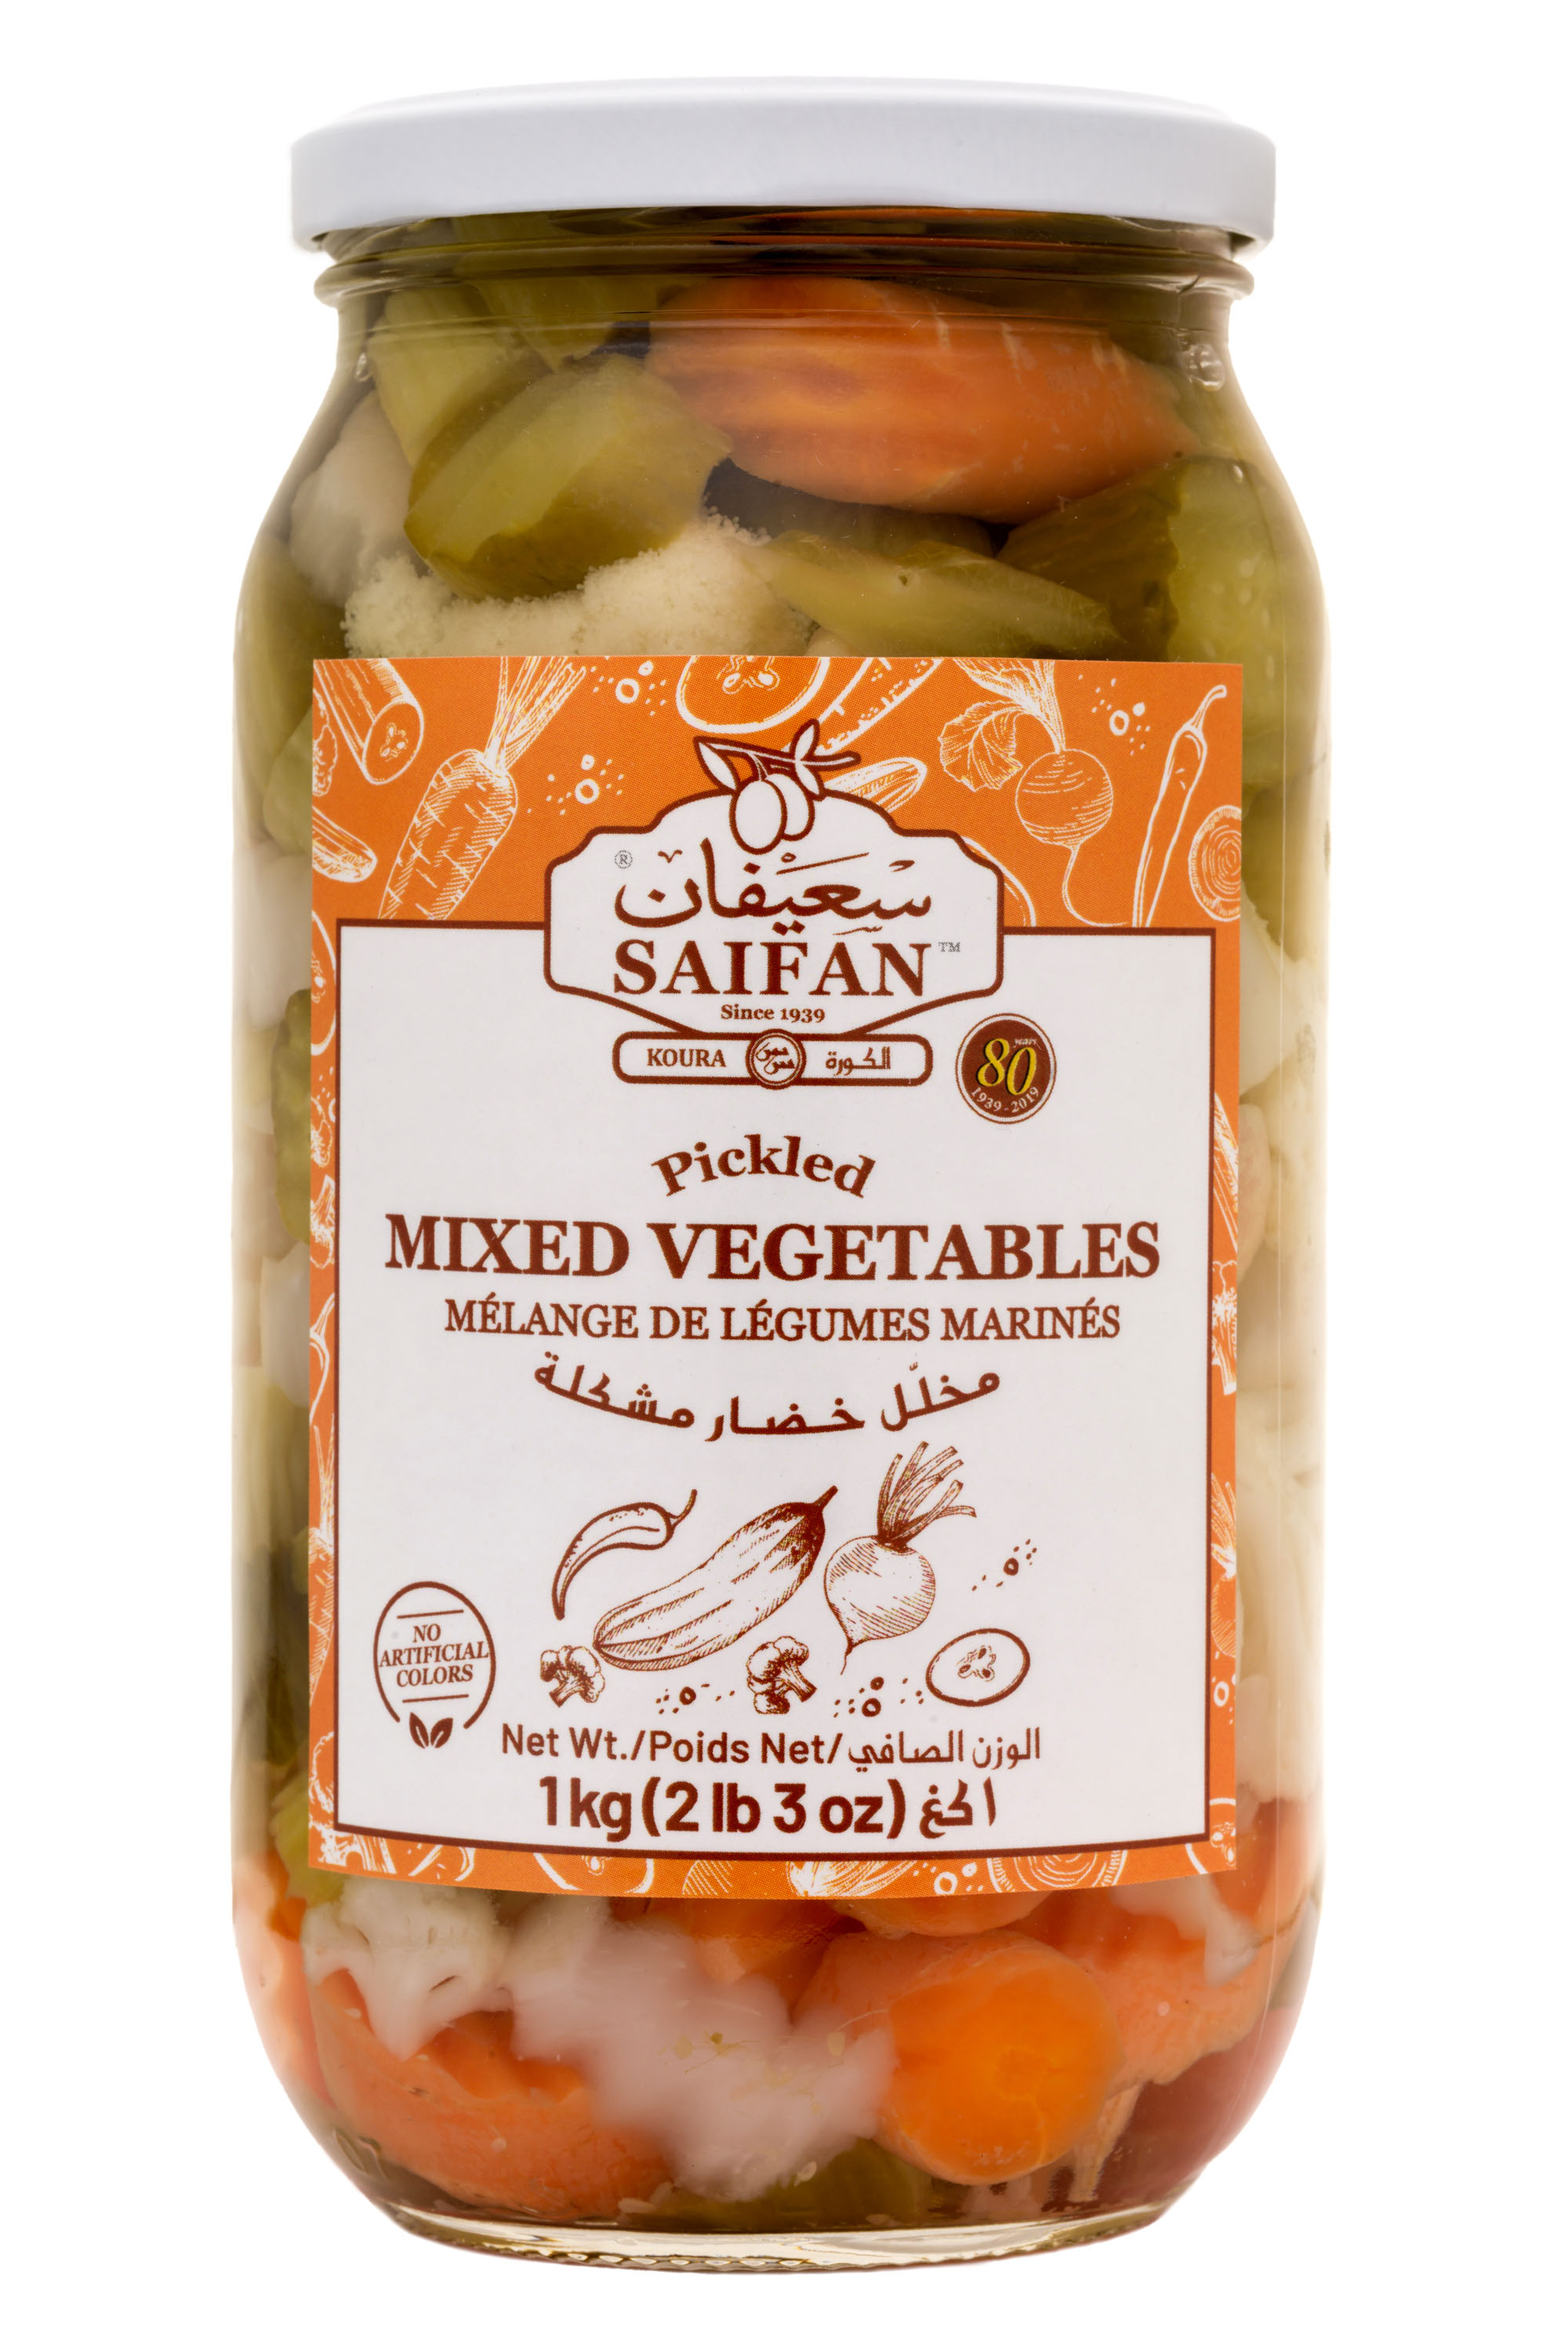 Pickled Mixed Vegetables